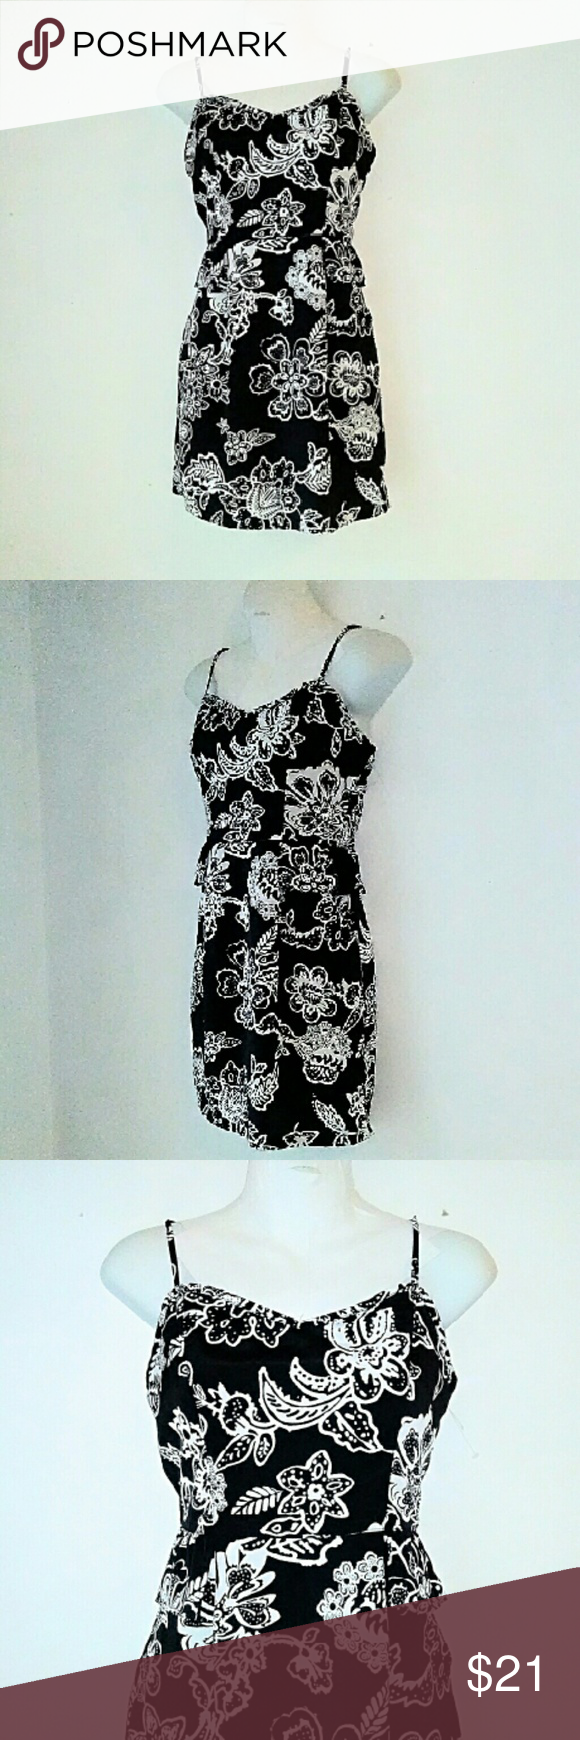 American Eagle Outfitters Floral Print Dress Black with white print dress. Features adjustable shoulder straps and a peplum ruffle at the waist line. Zipper on the back. And material is poly. Excellent like new condition American Eagle Outfitters Dresses Mini